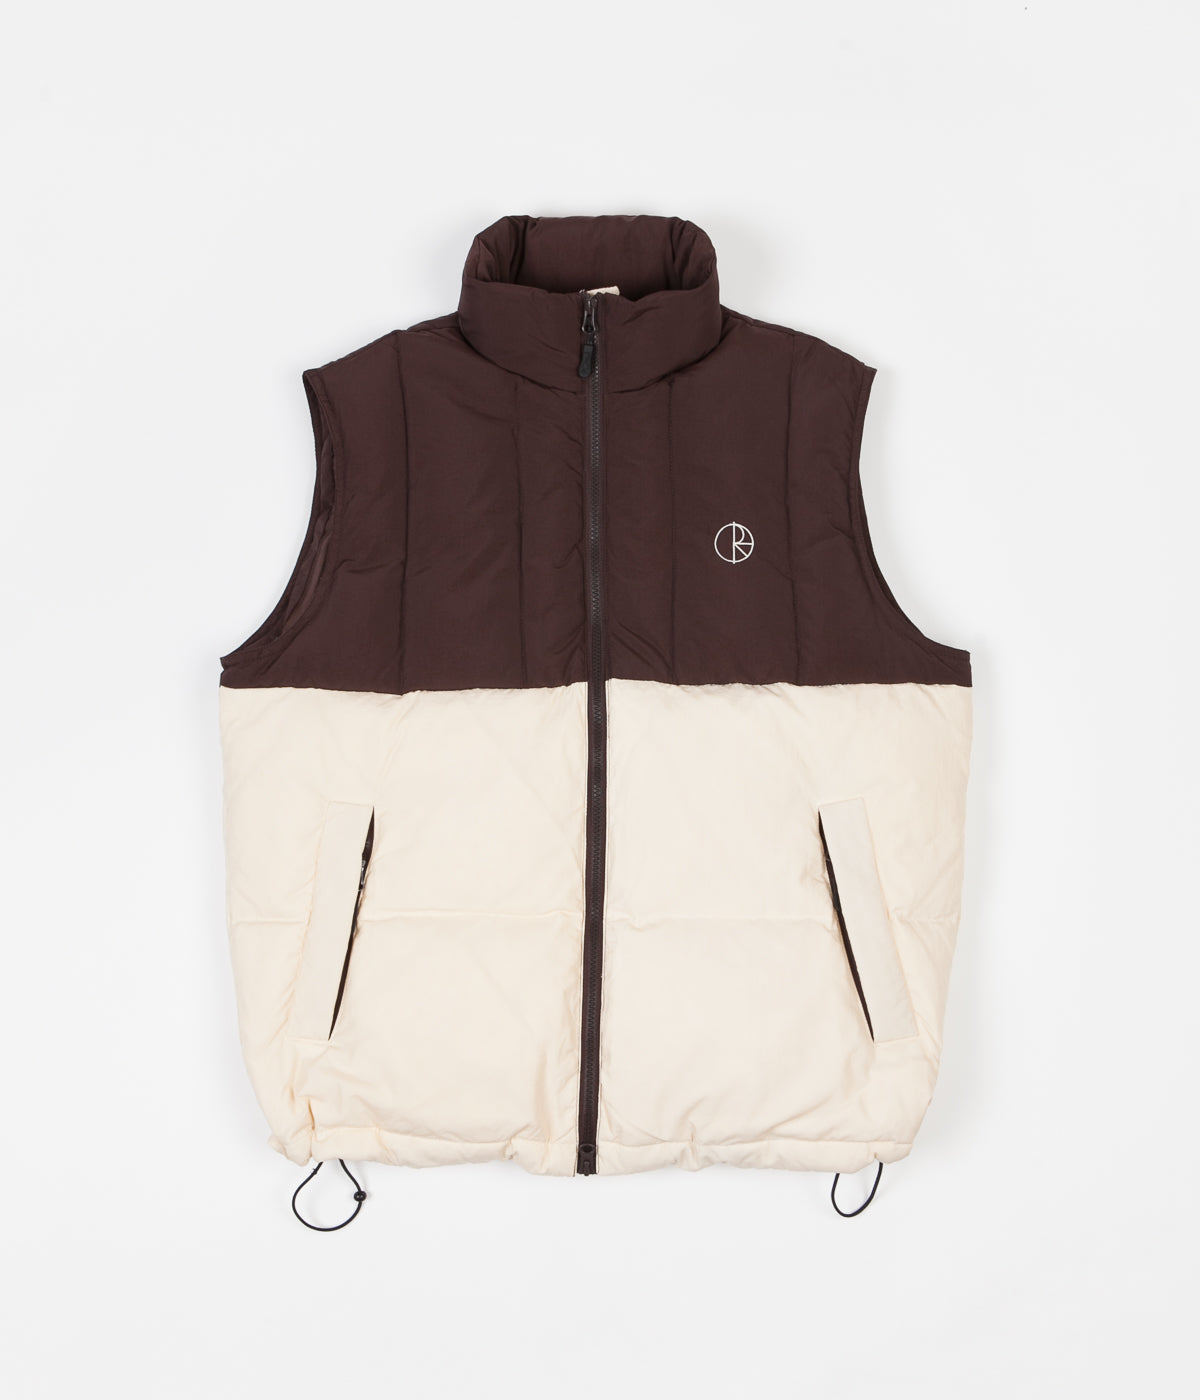 Polar Combo Puffer Vest - Brown / Cream